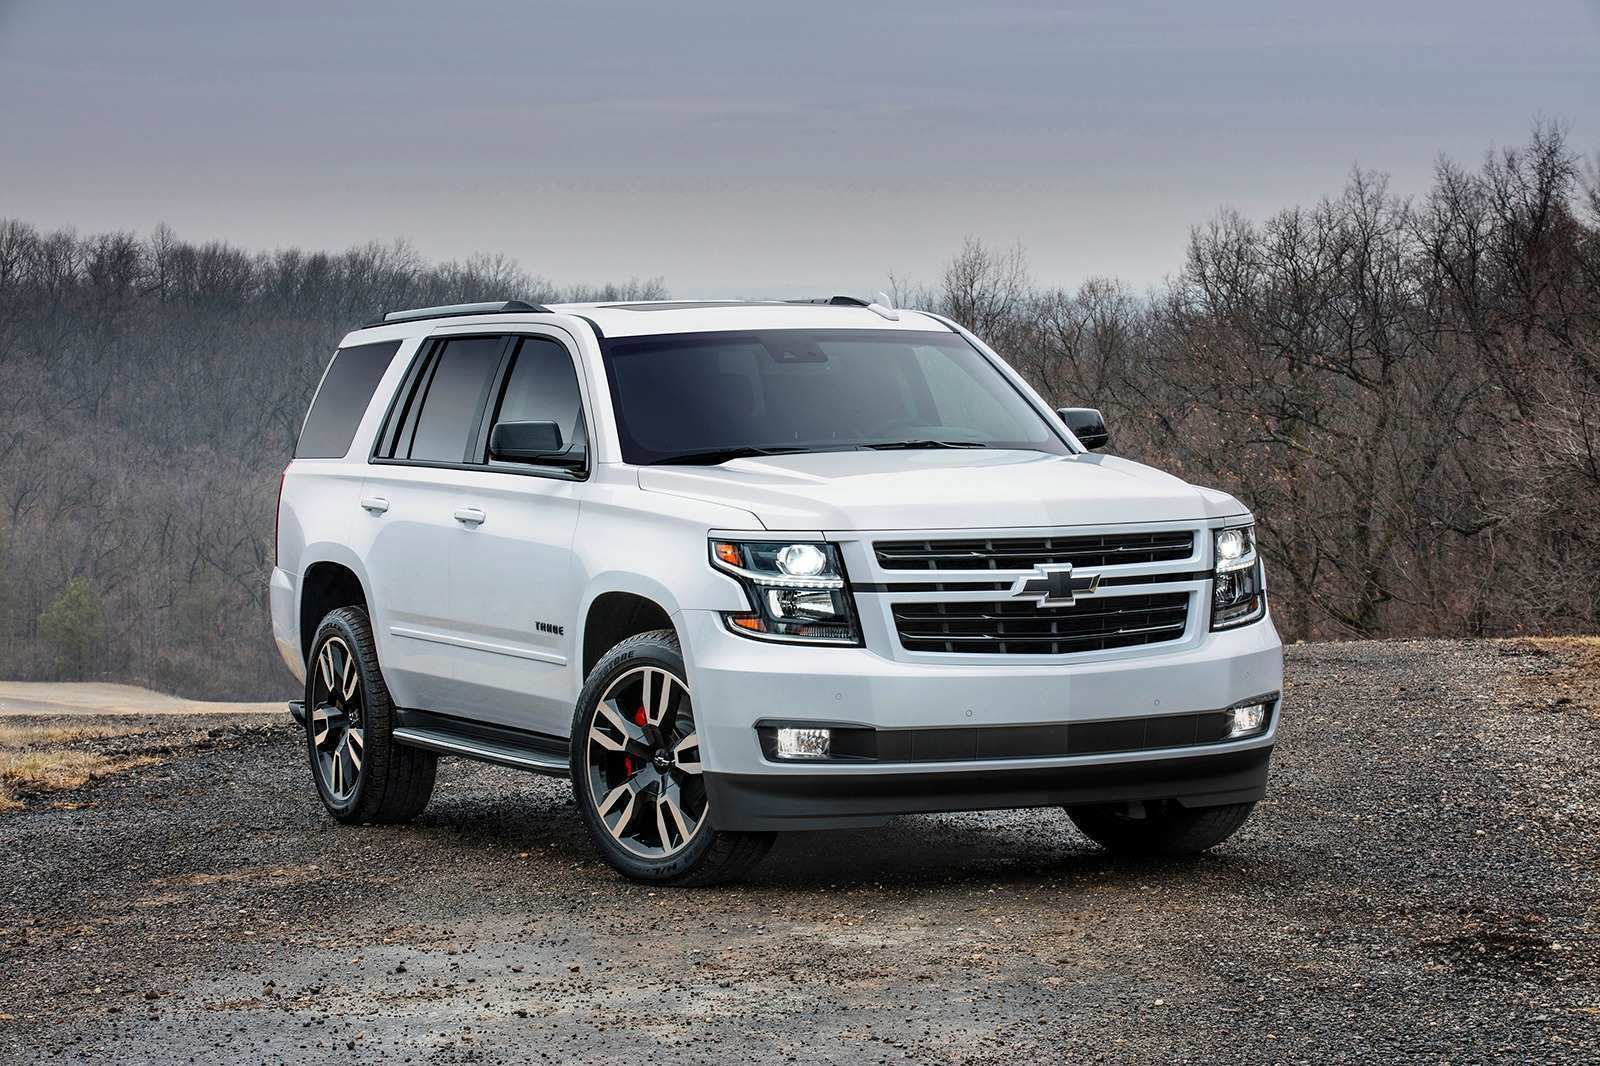 76 All New 2019 Chevy Tahoe Specs